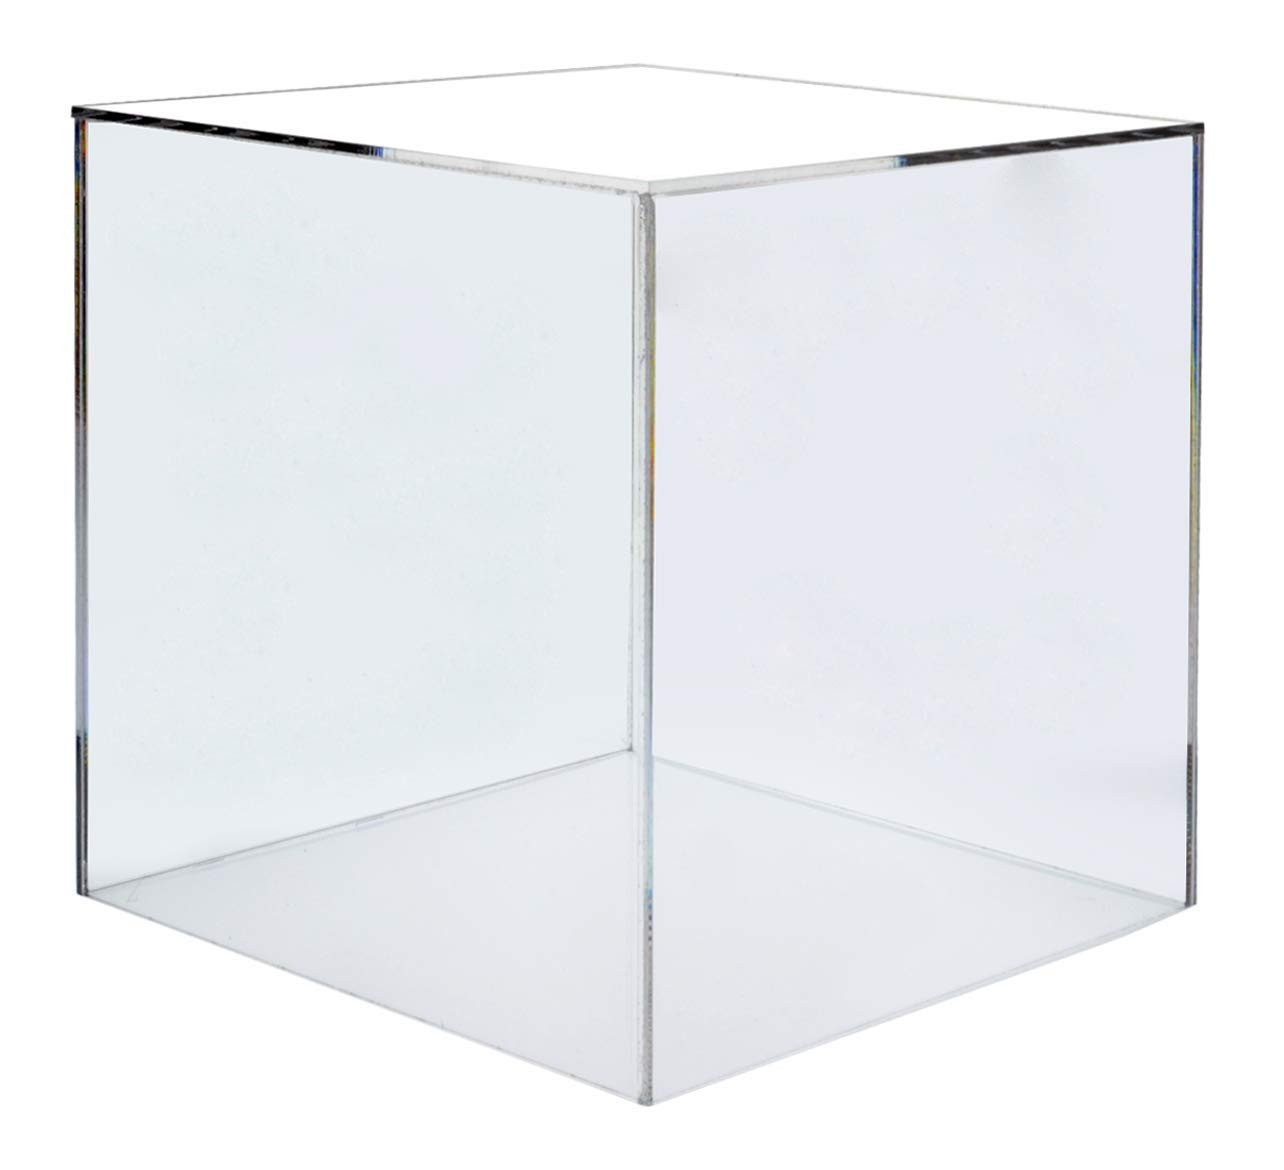 Marketing Holders 10''w x 10''d x 10''h Pedestal Stand Art Presentation Exhibit Example Trophy Sample Flower Arrangement Display Plant Stand Cube Retail Riser Collectible Cover 5 Sided by Marketing Holders